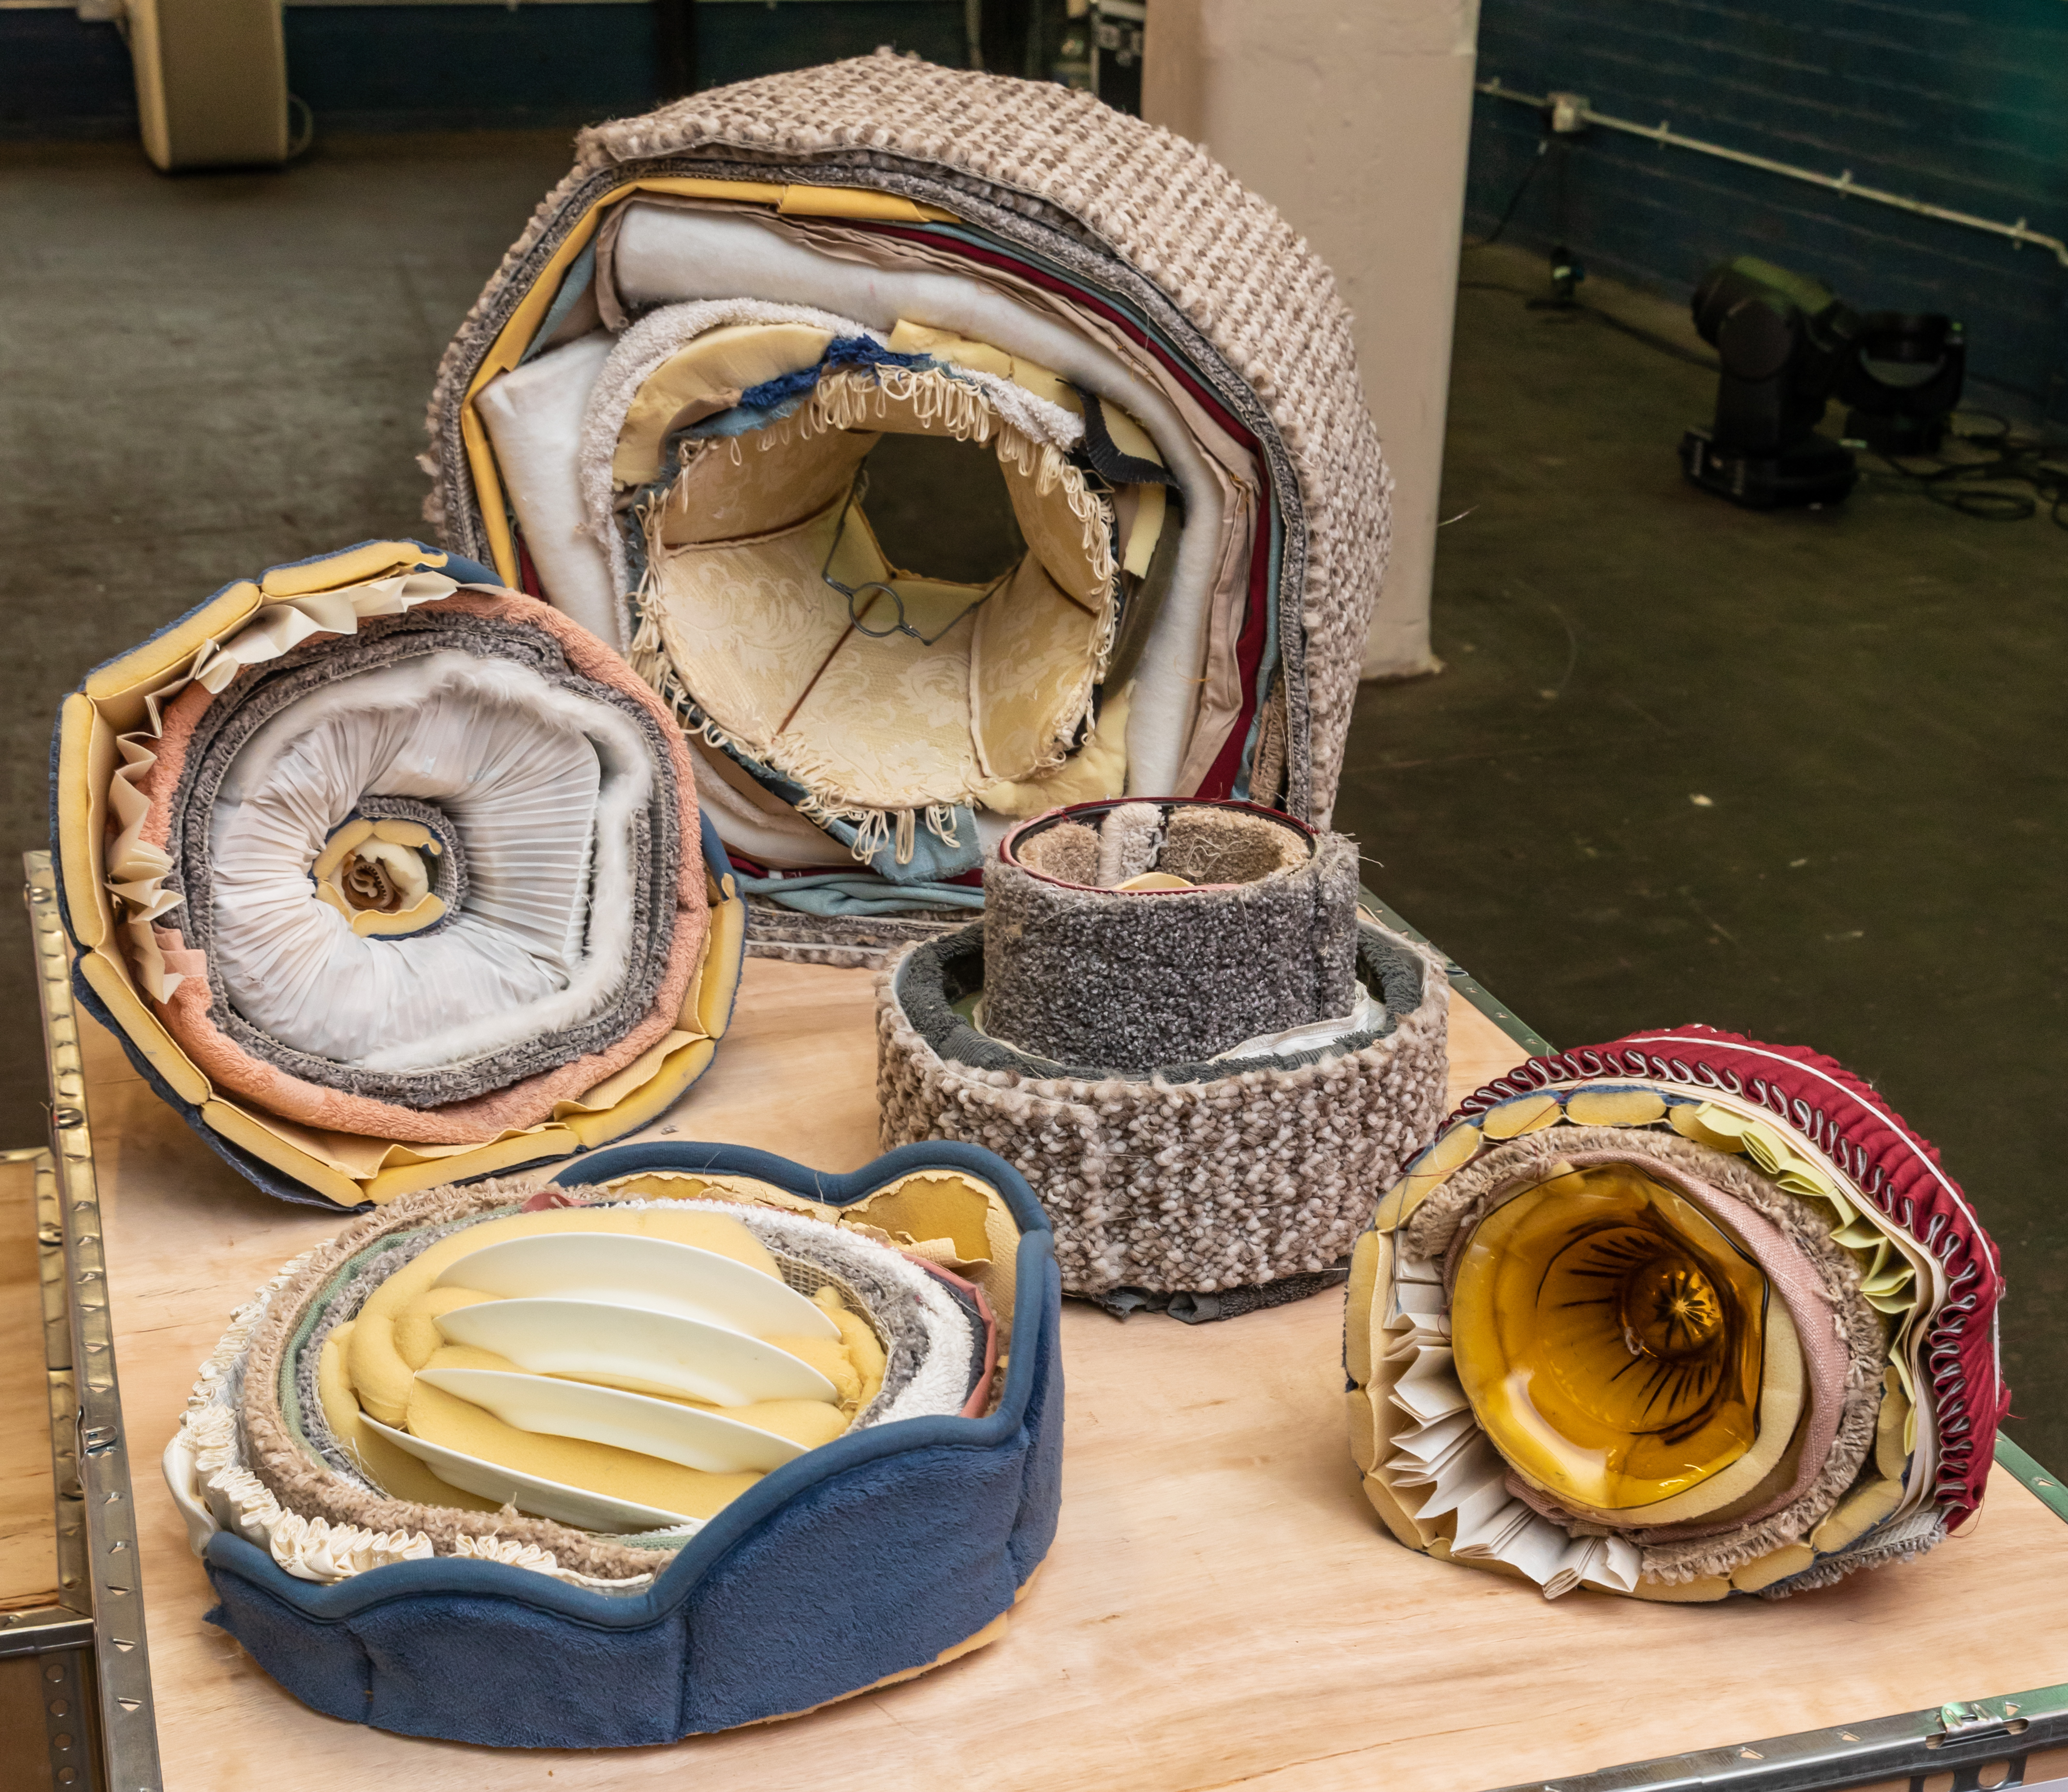 'Unwanted objects' By Martha Dommett. A collection of soft sculptures created completely out of discarded materials on exhibition at Origins Creative Arts Festival 2019